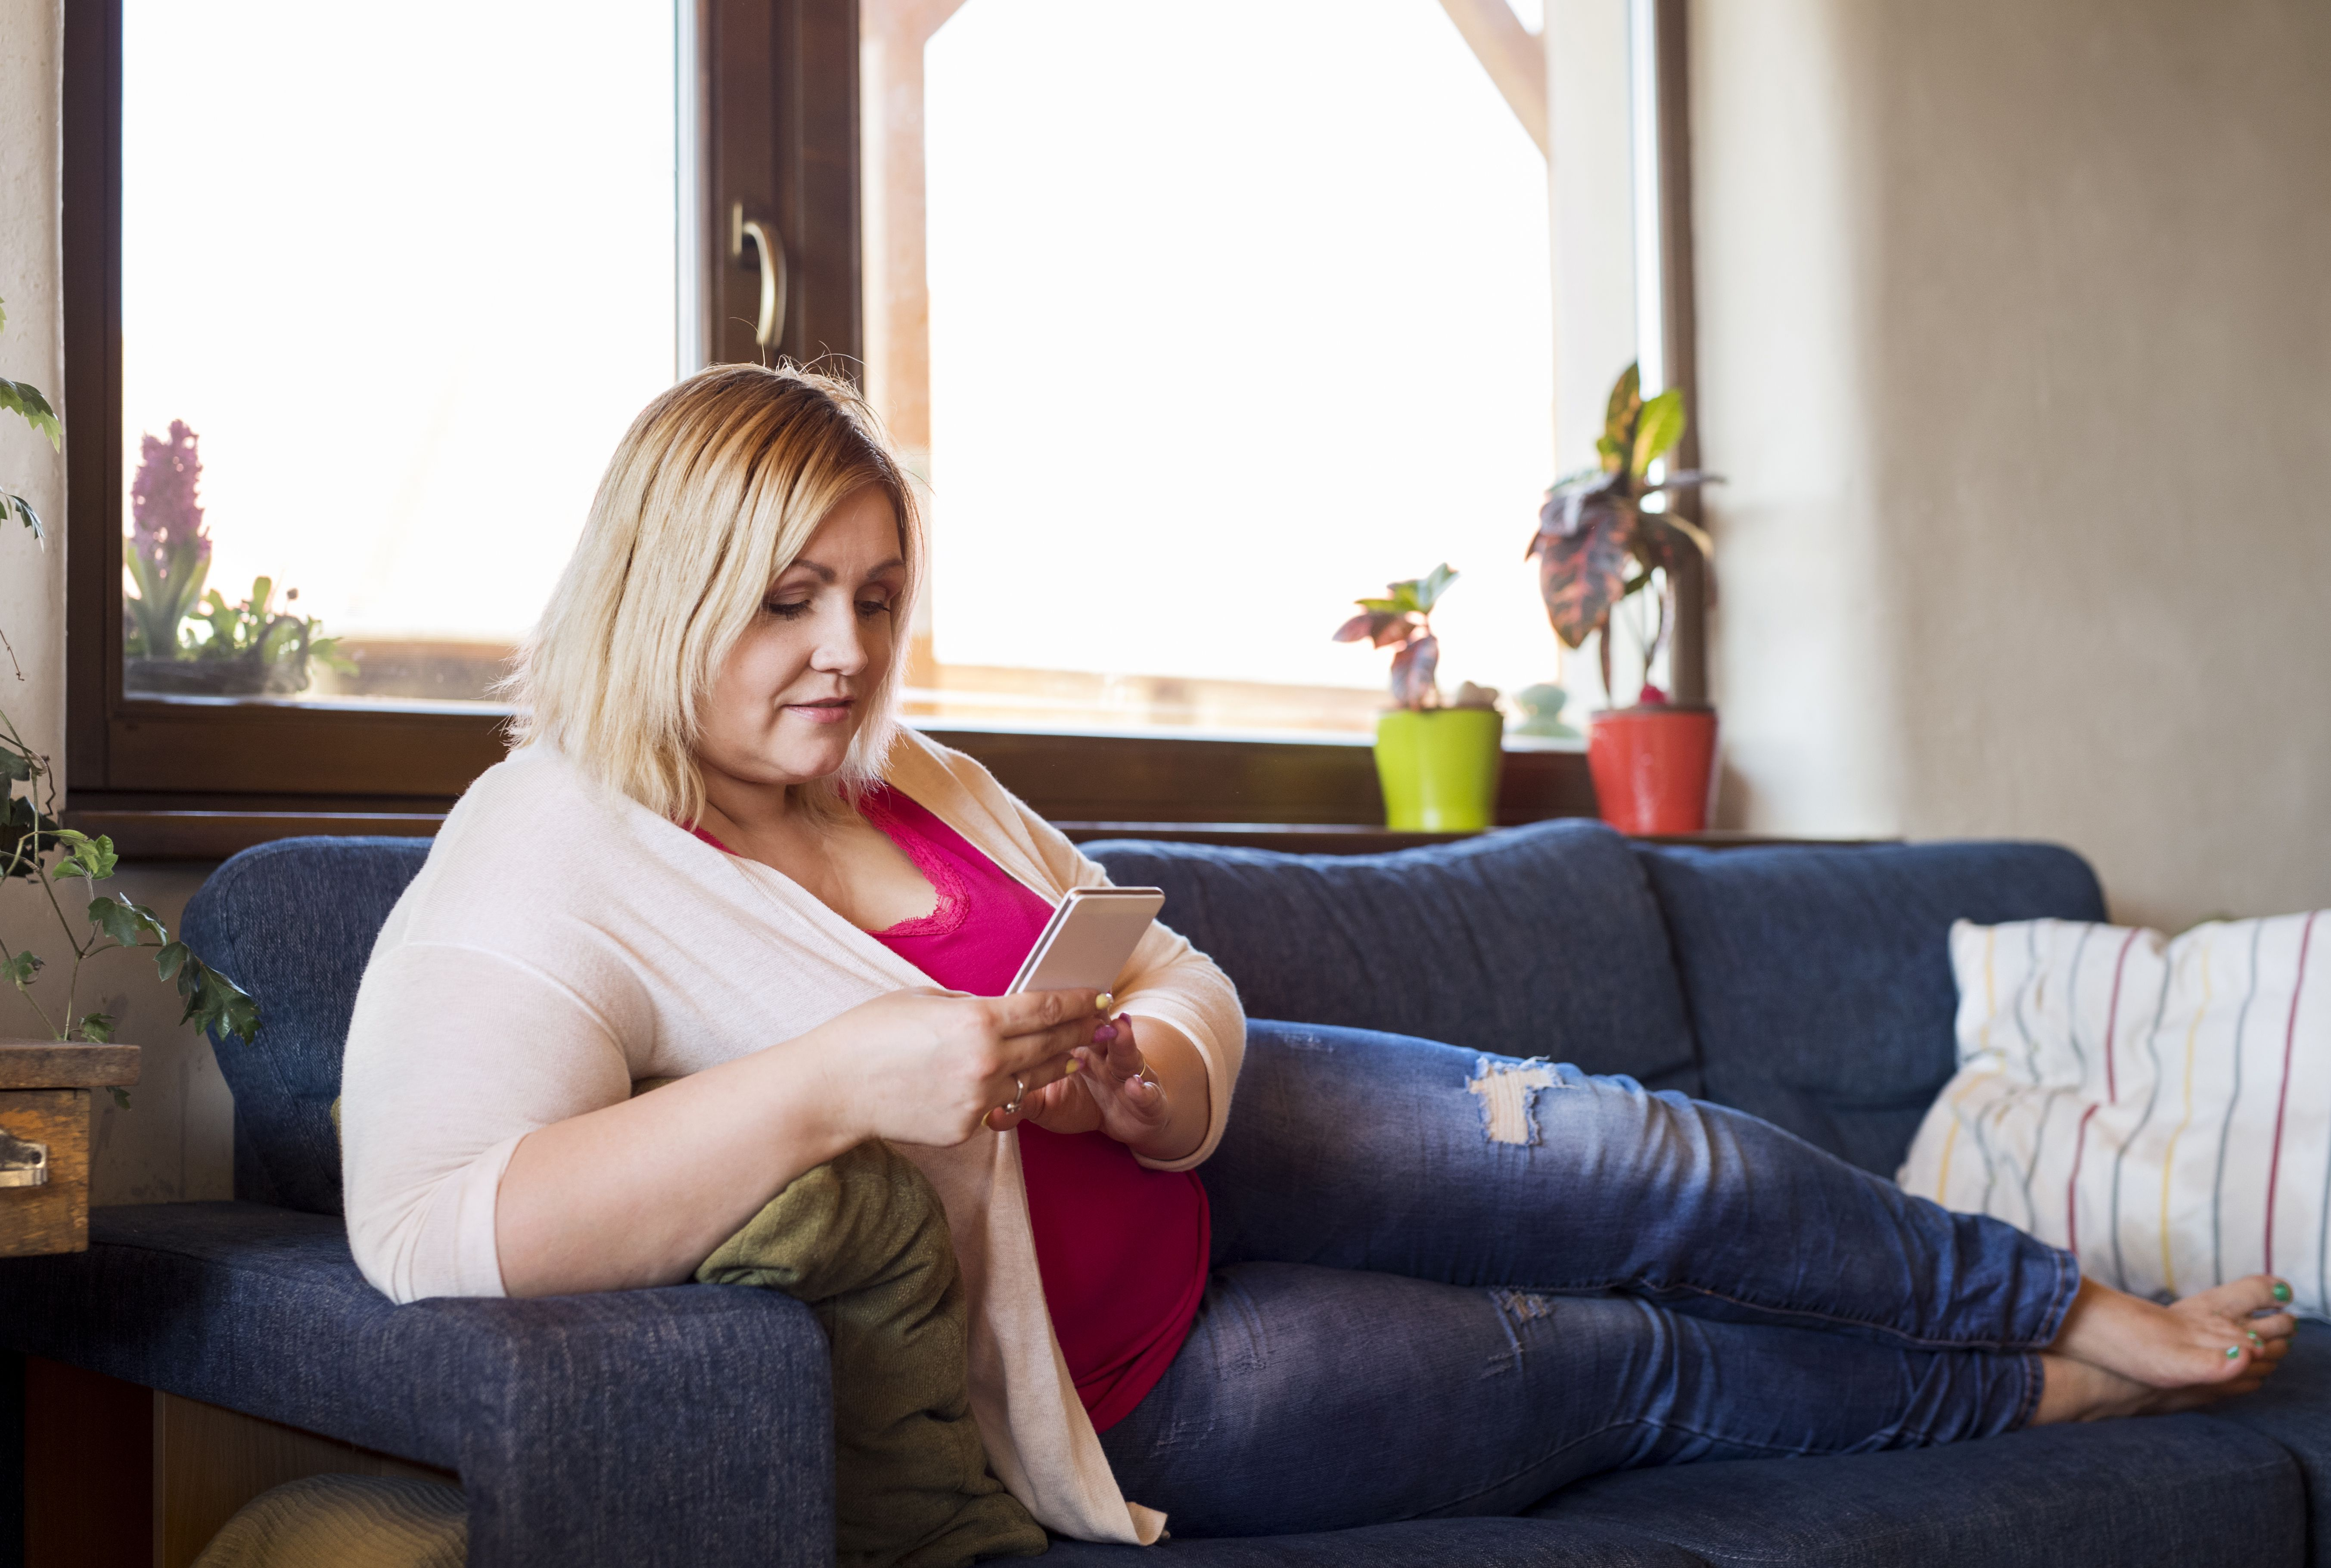 Attractive overweight woman at home lying on couch, holding smart phone, texting.